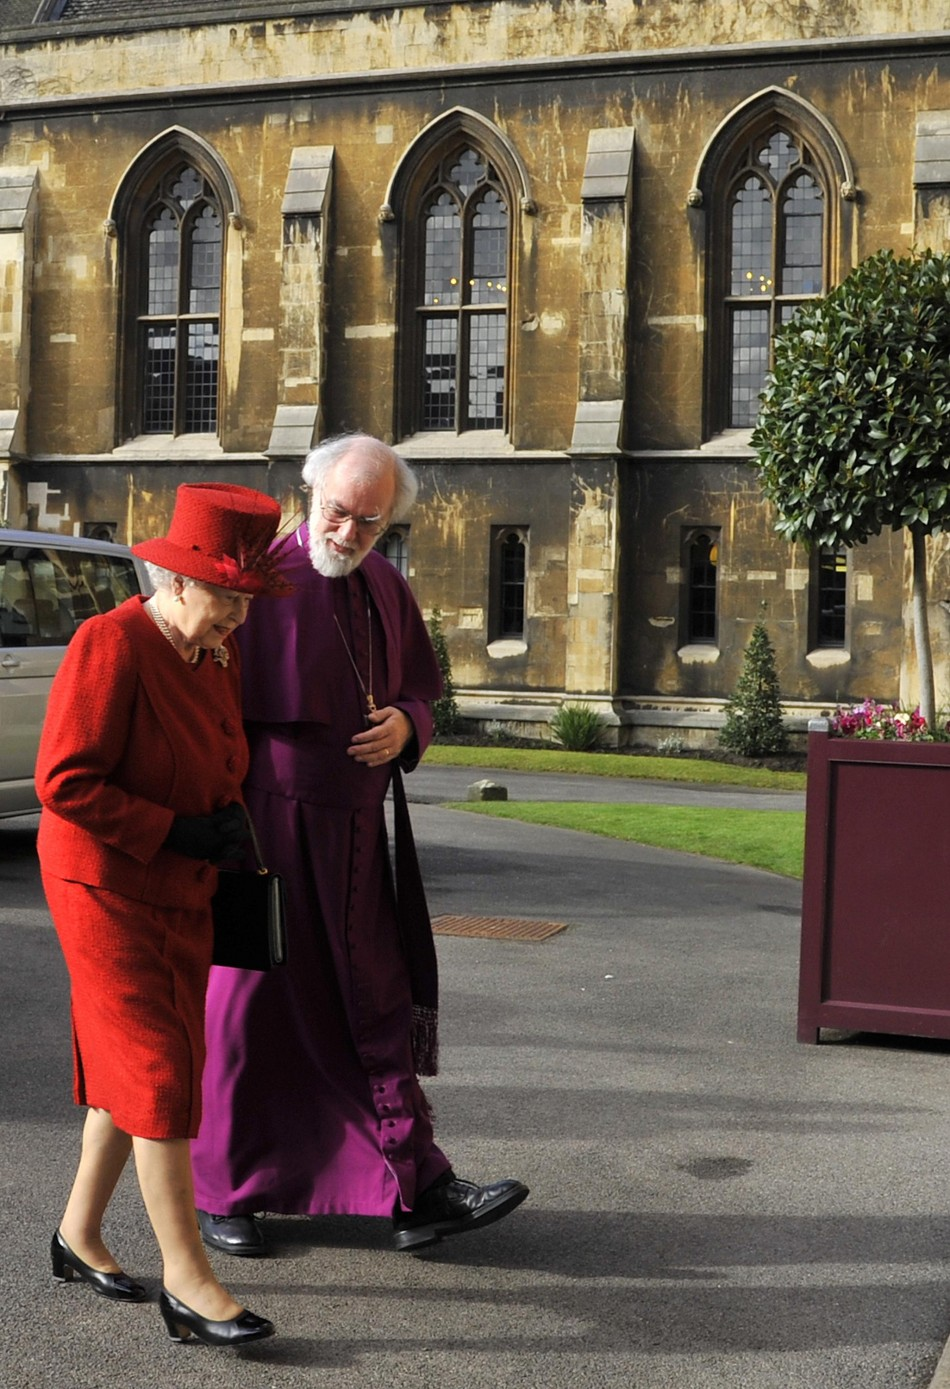 'The concept of our established Church is occasionally misunderstood' says Queen Elizabeth